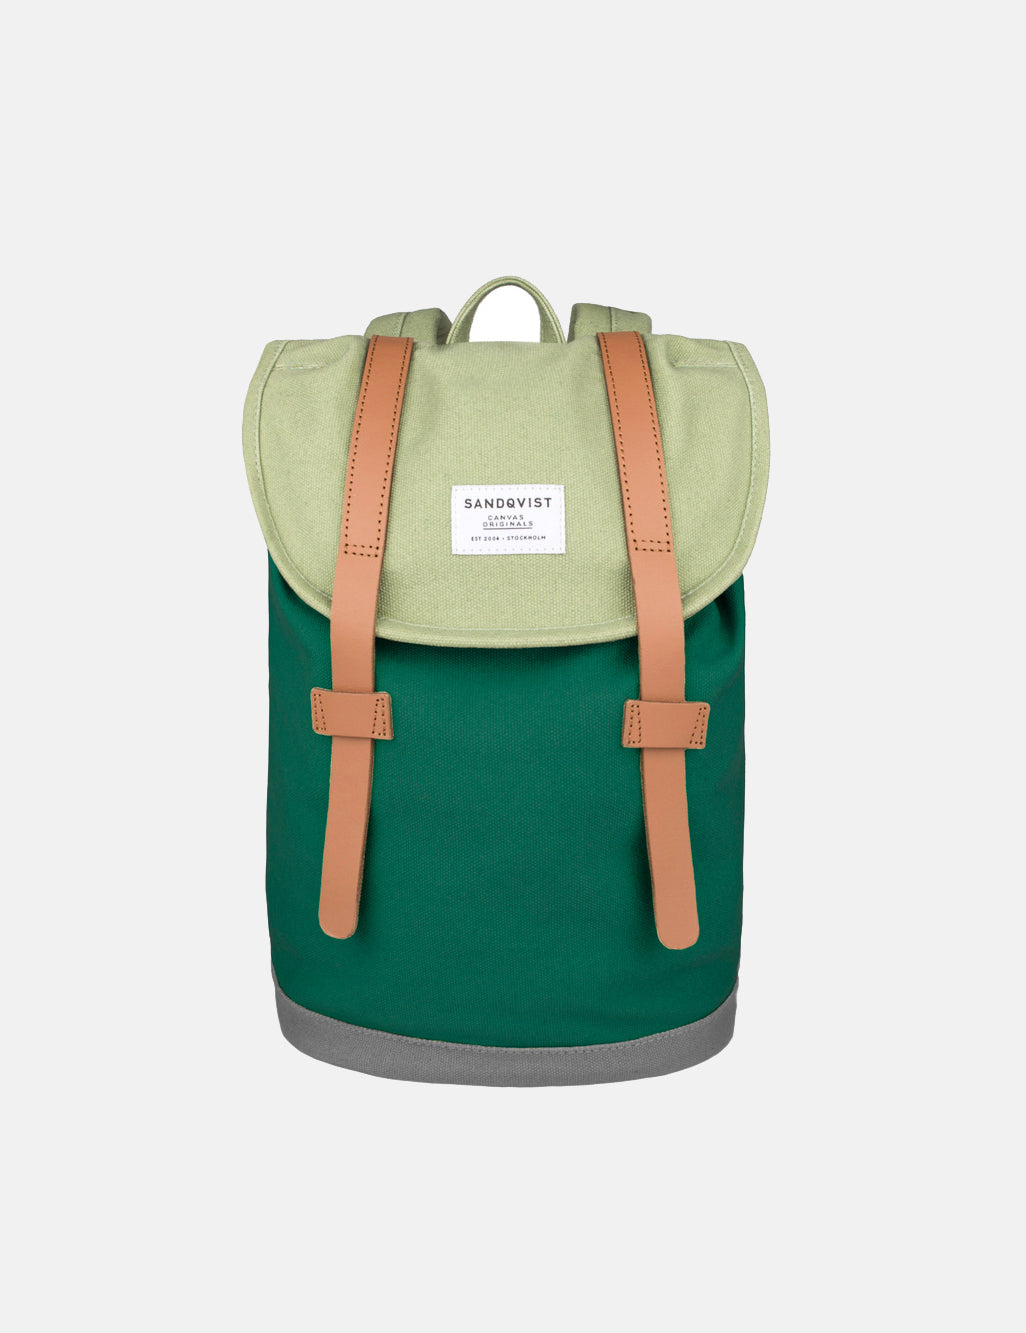 Sandqvist Stig Mini Backpack (Canvas) - Forest Green/Sage | URBAN EXCESS.